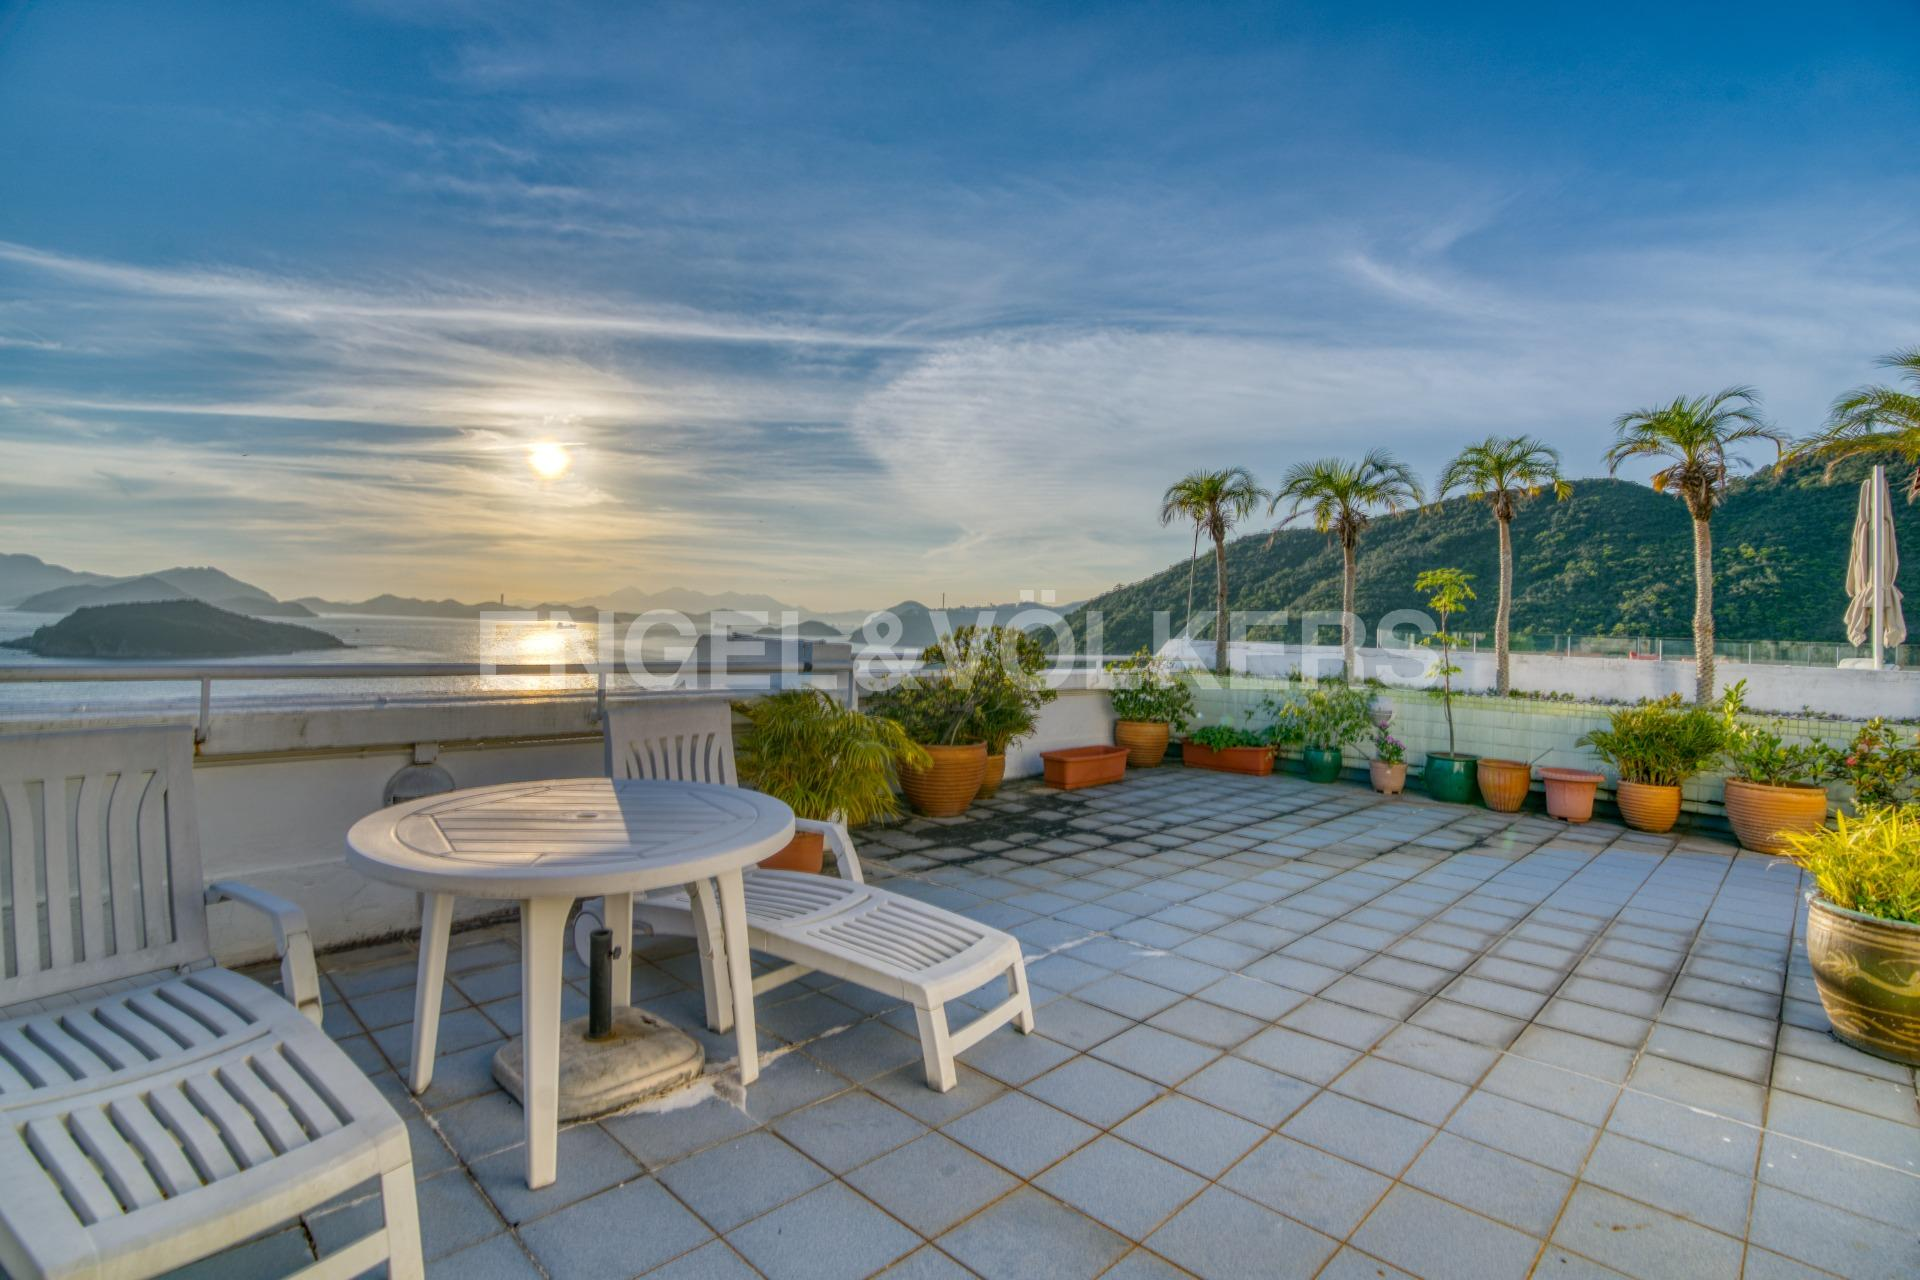 House in Peak/South - Coral Villas 珊瑚小築